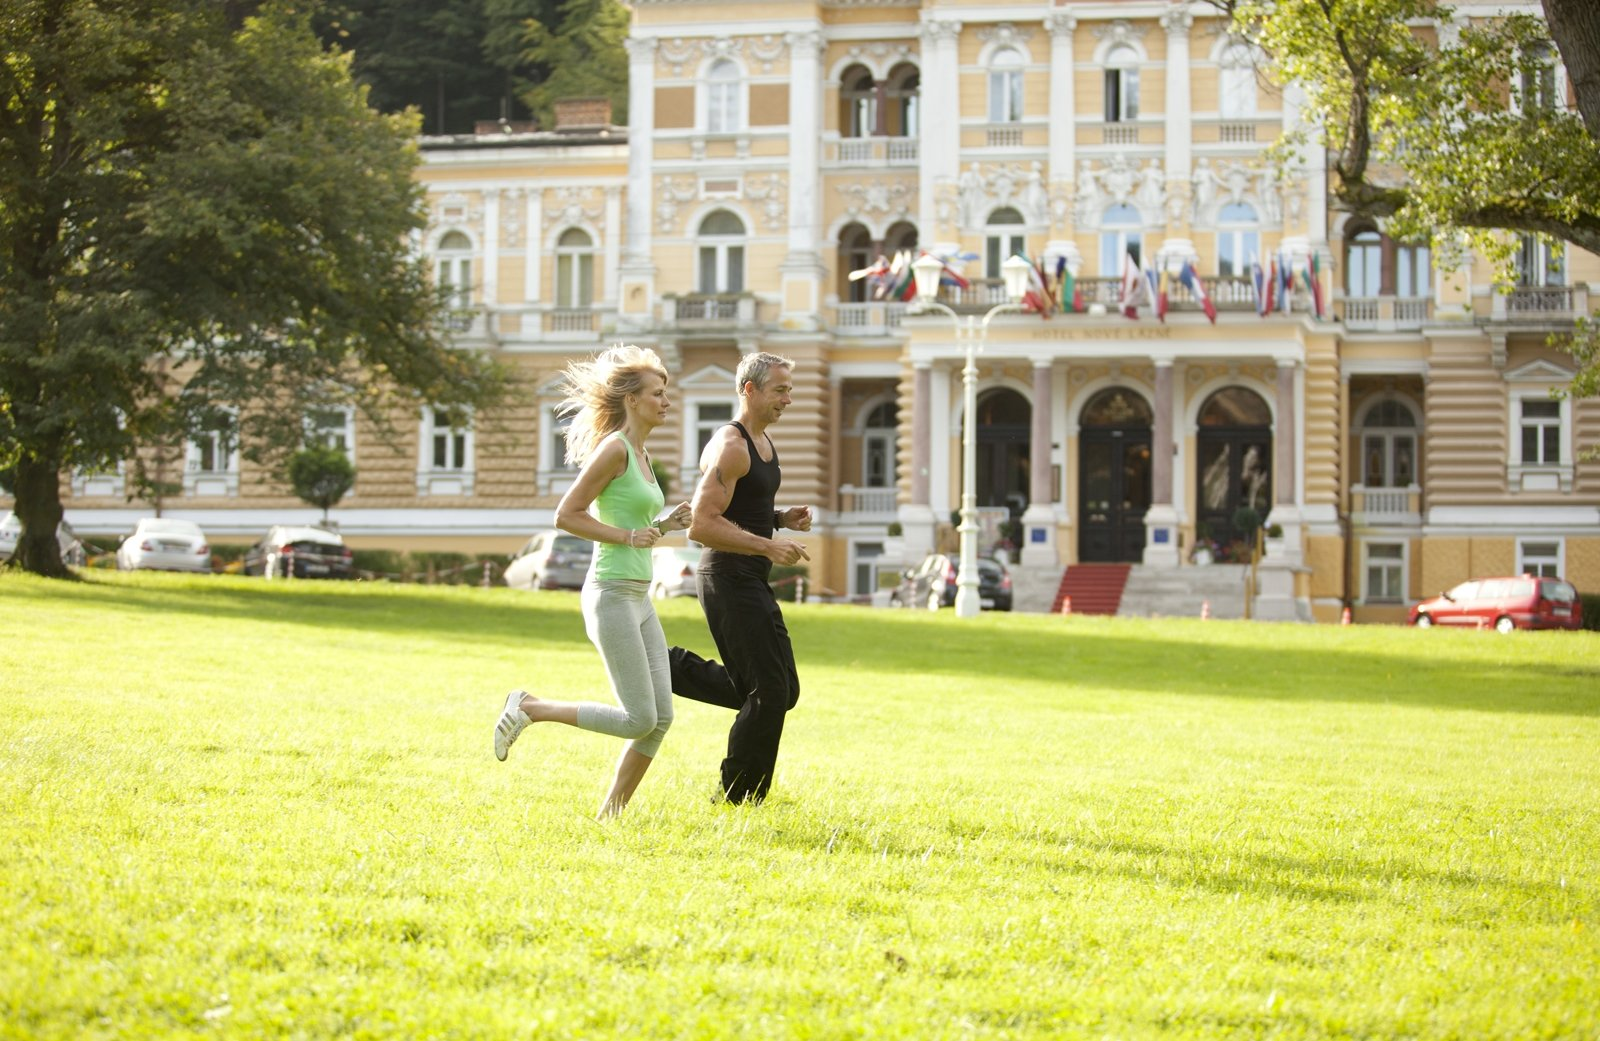 - Danubius+Health+Spa+Resort+Nov%C3%A9+L%C3%A1zn%C4%9B - hotel Marienbad